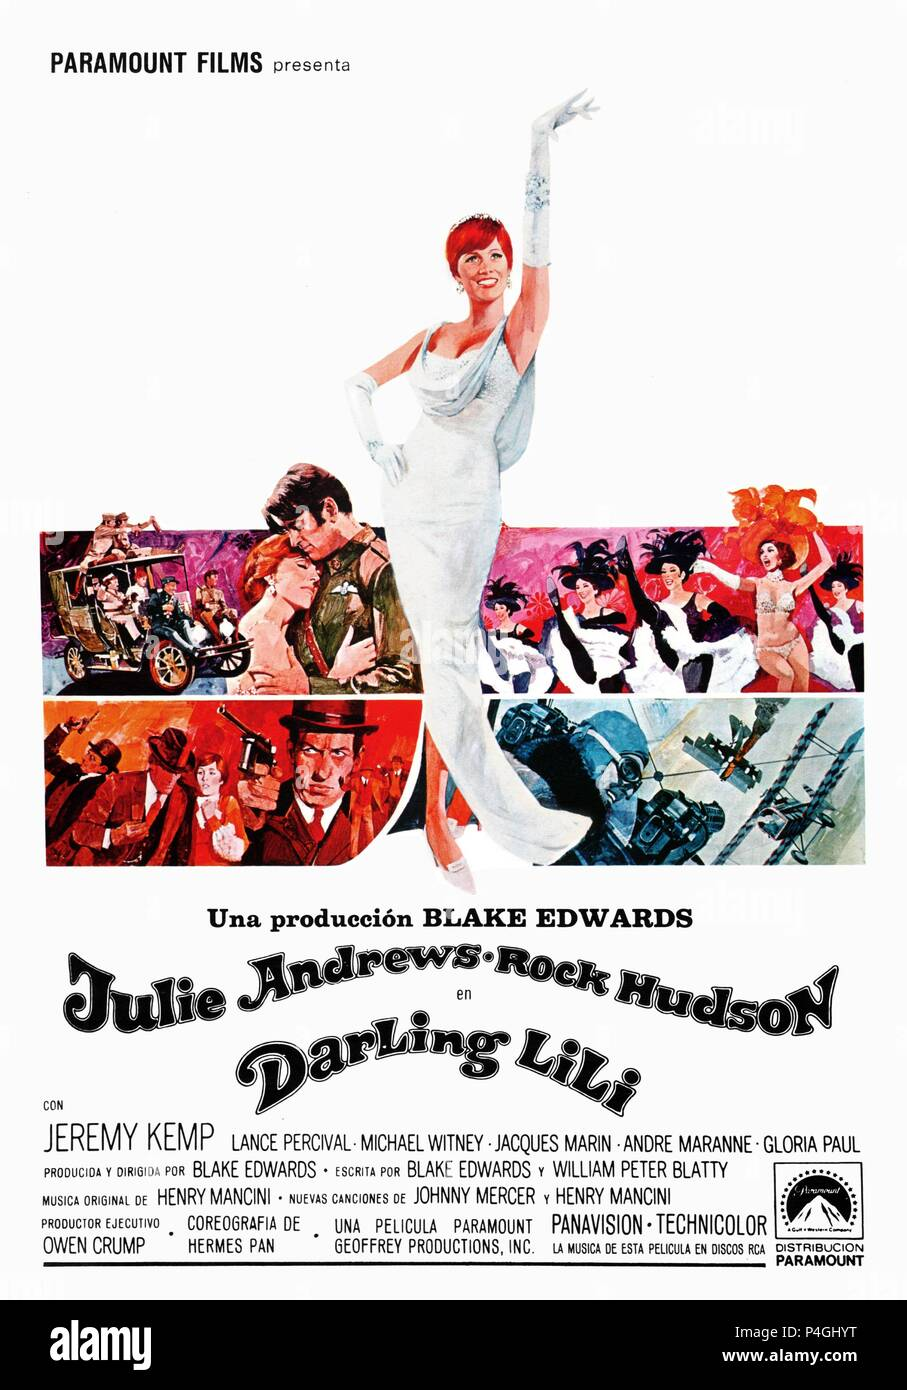 Original Film Title: DARLING LILI.  English Title: DARLING LILI.  Film Director: BLAKE EDWARDS.  Year: 1970. Credit: PARAMOUNT PICTURES / Album - Stock Image